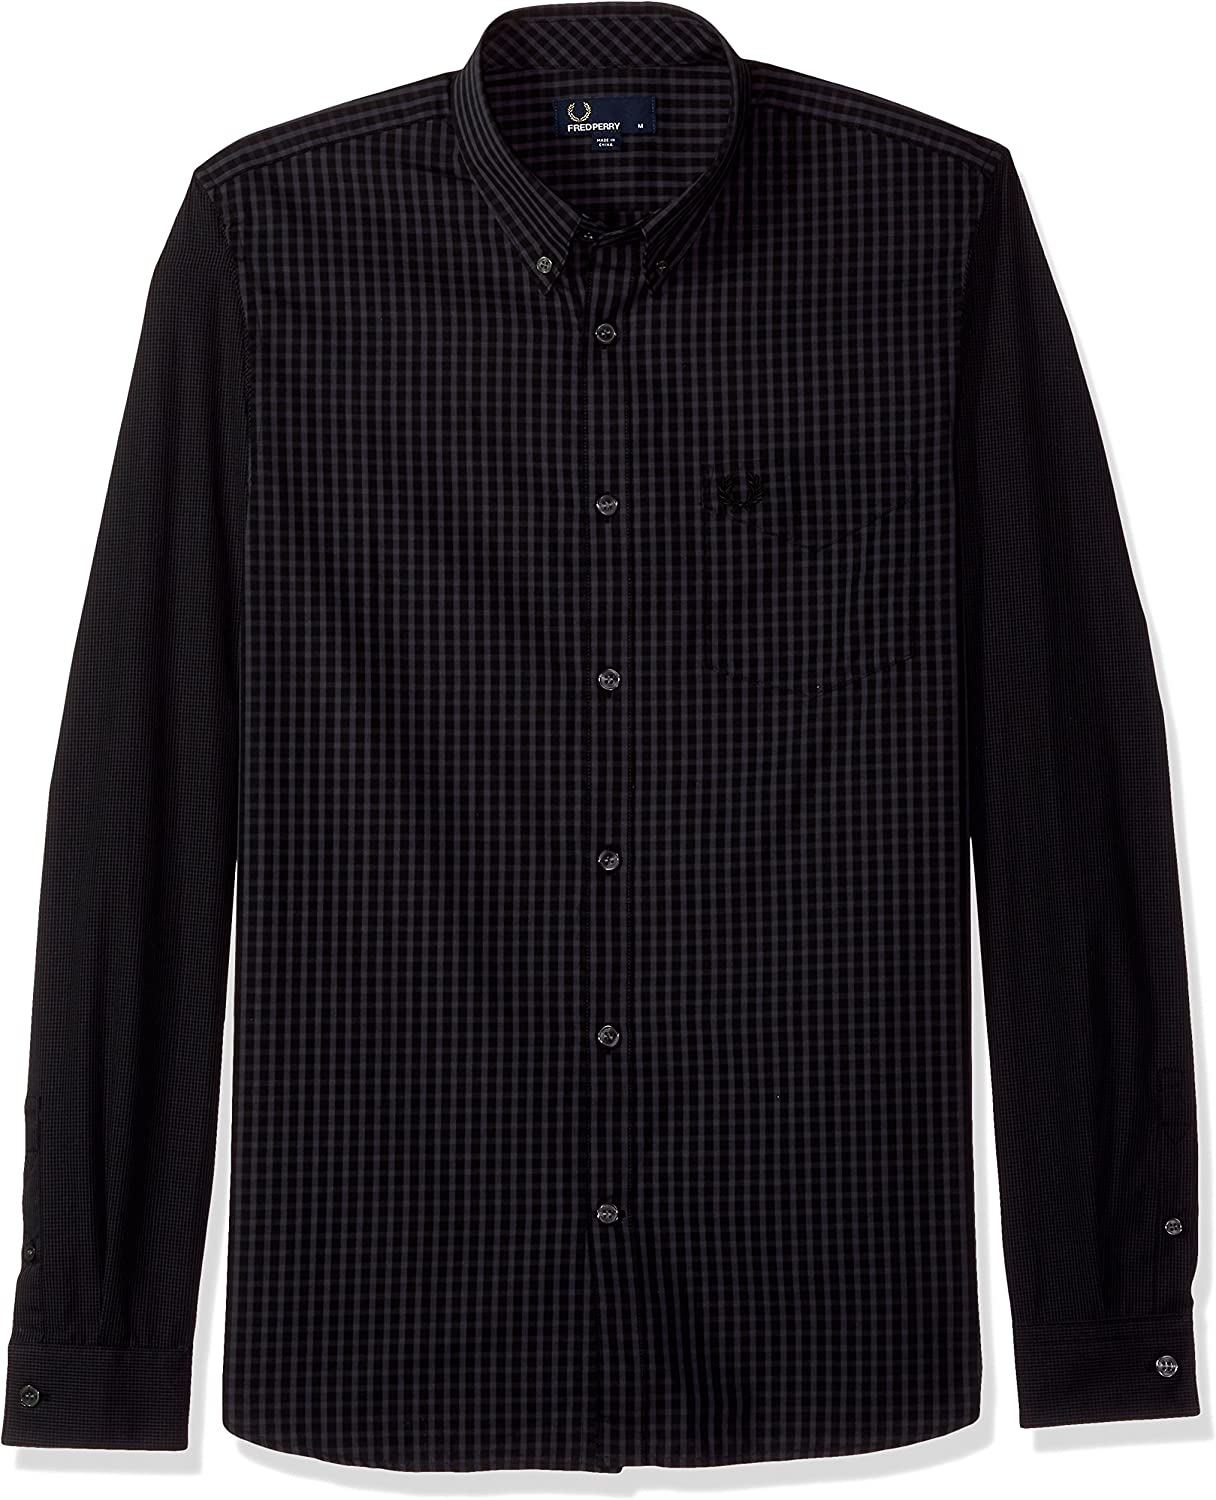 Fred Perry 3353Z Camicia uomo Blue/Black Gingham Shirt Cotton Man: Amazon.es: Ropa y accesorios